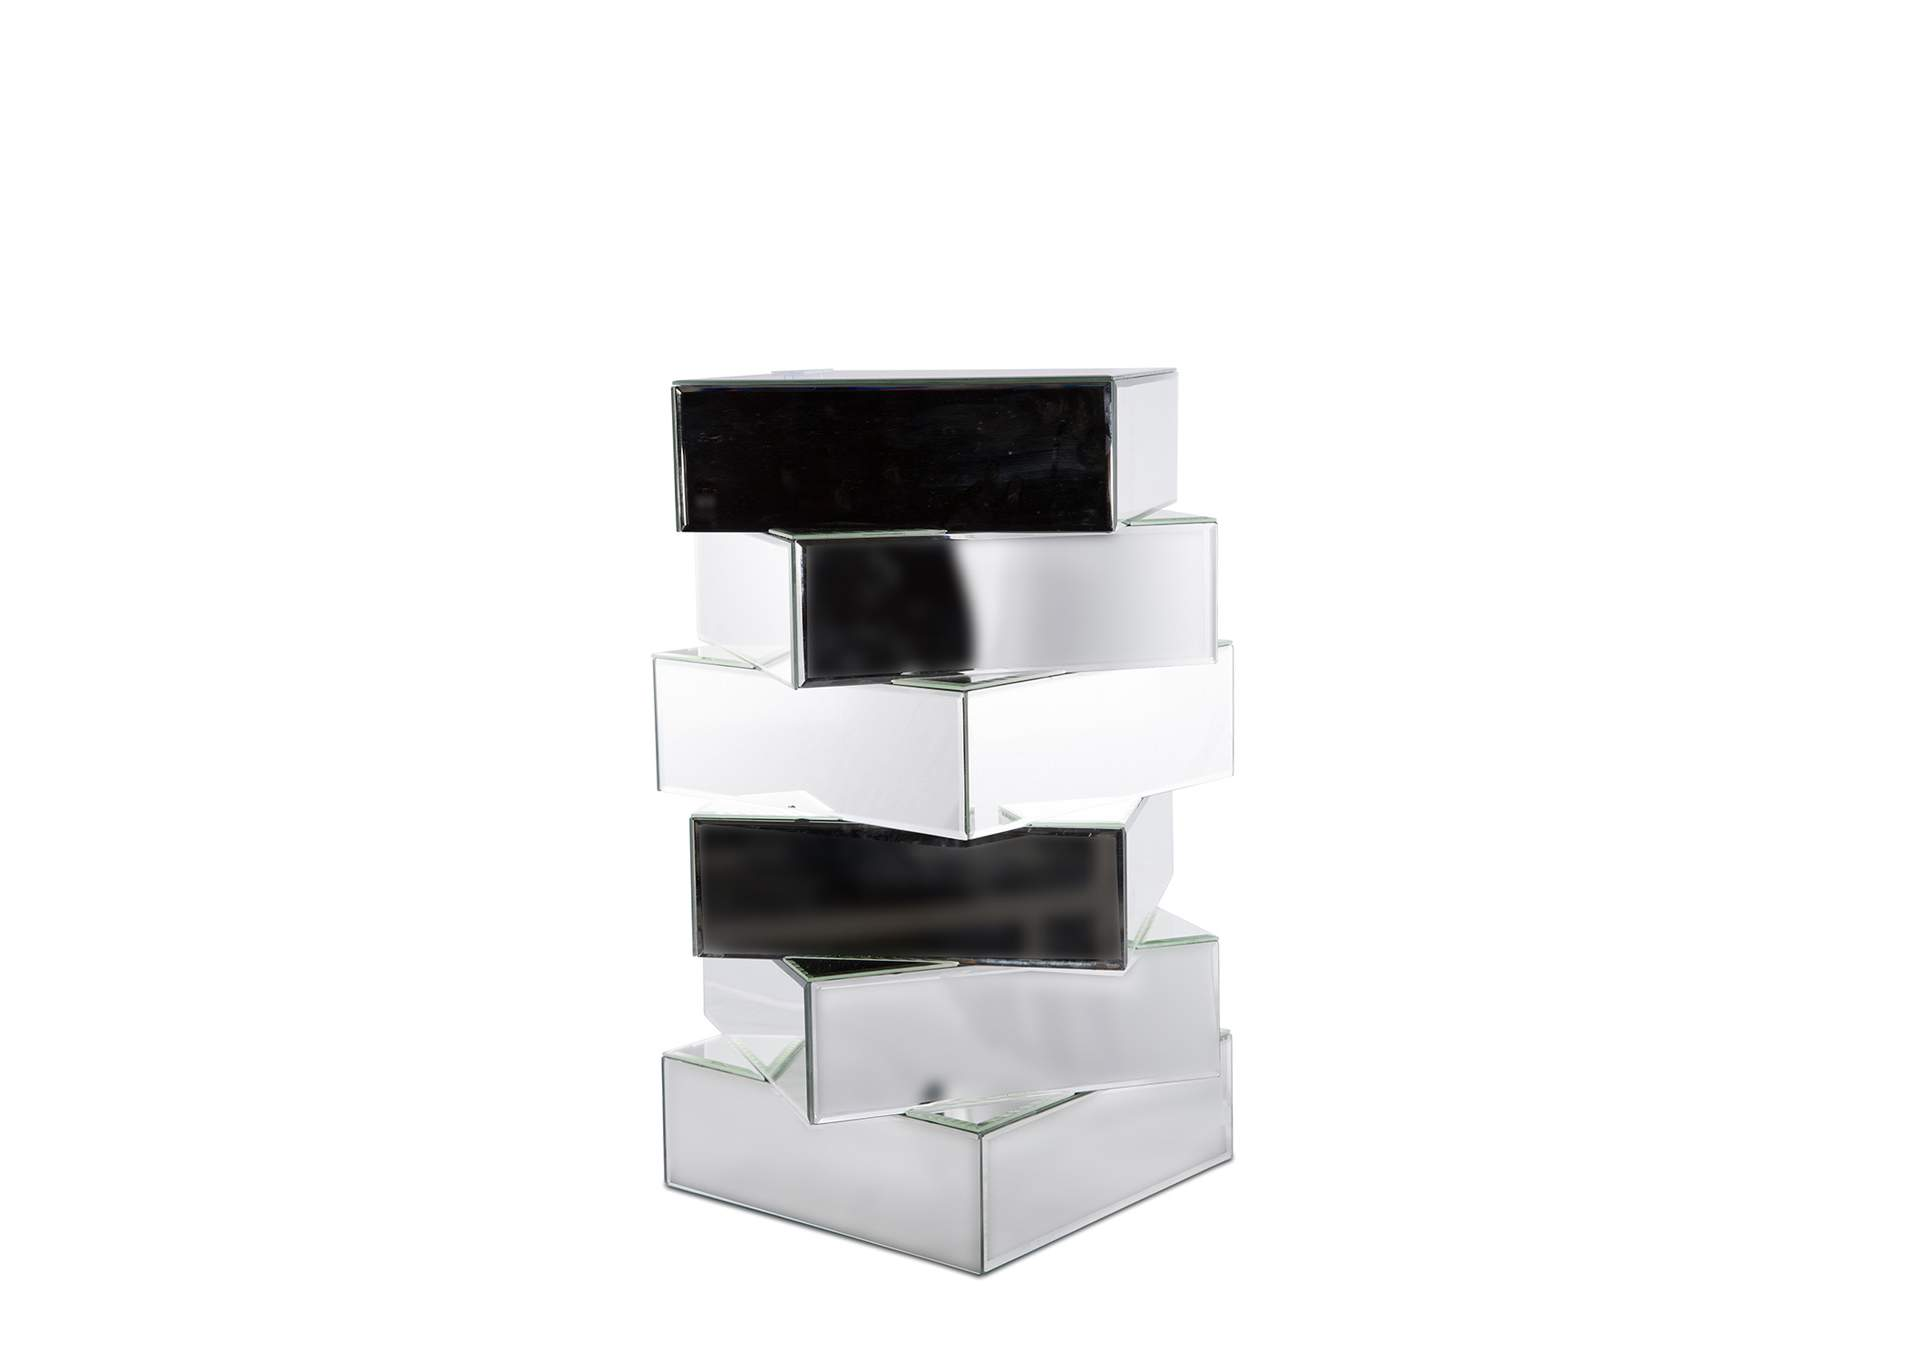 Montreal White & Black Mirrored Stacking Blocks End Table,AICO